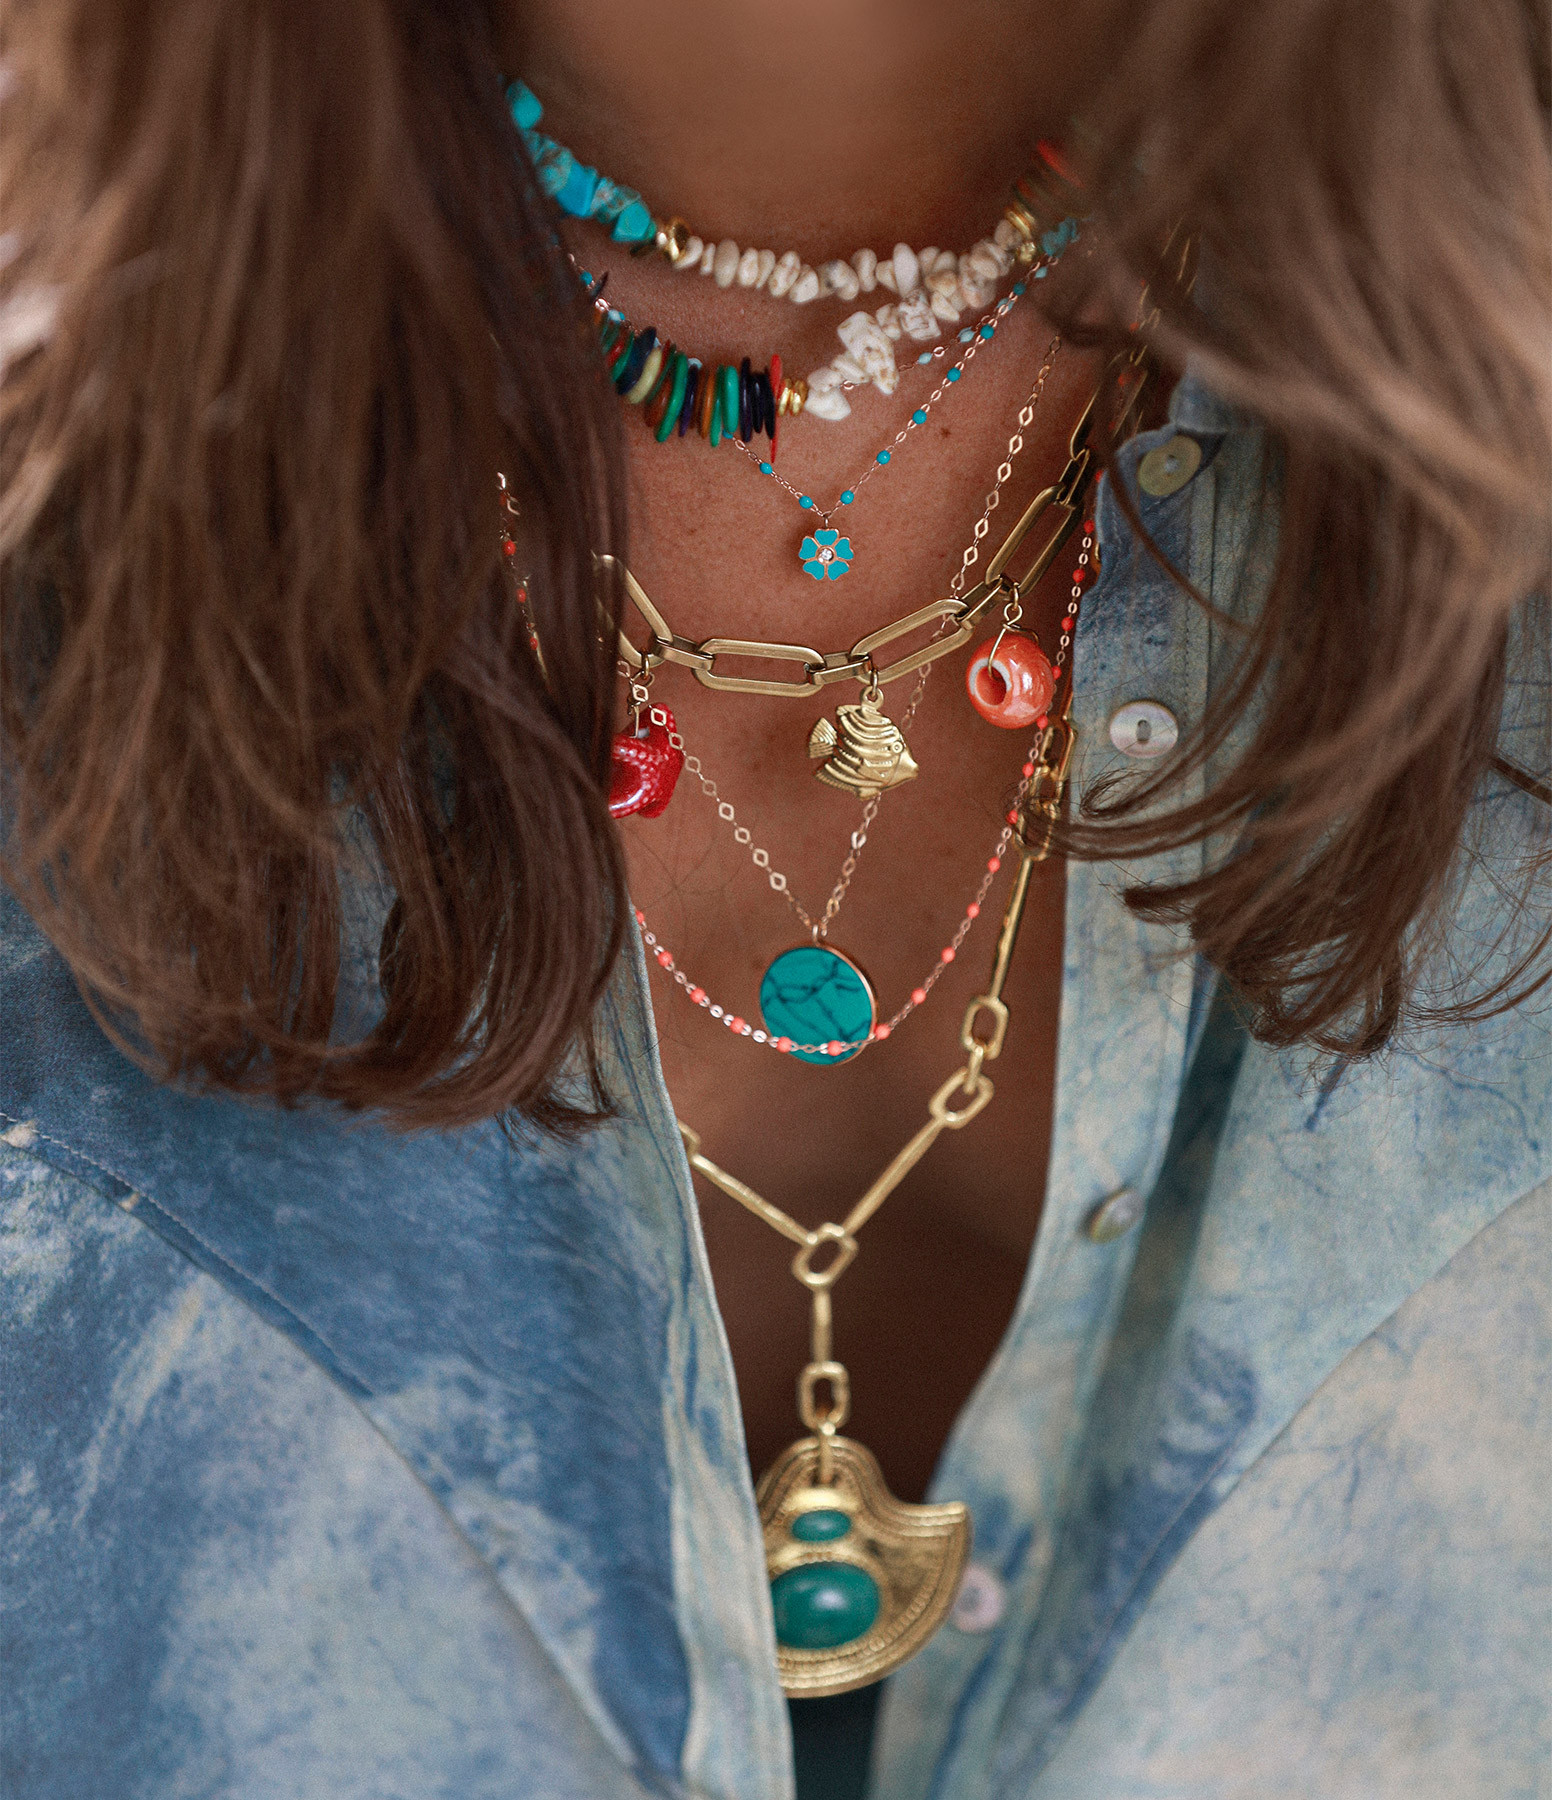 SHAKER JEWELS - Collier Pierres Turquoises Plaqué Or